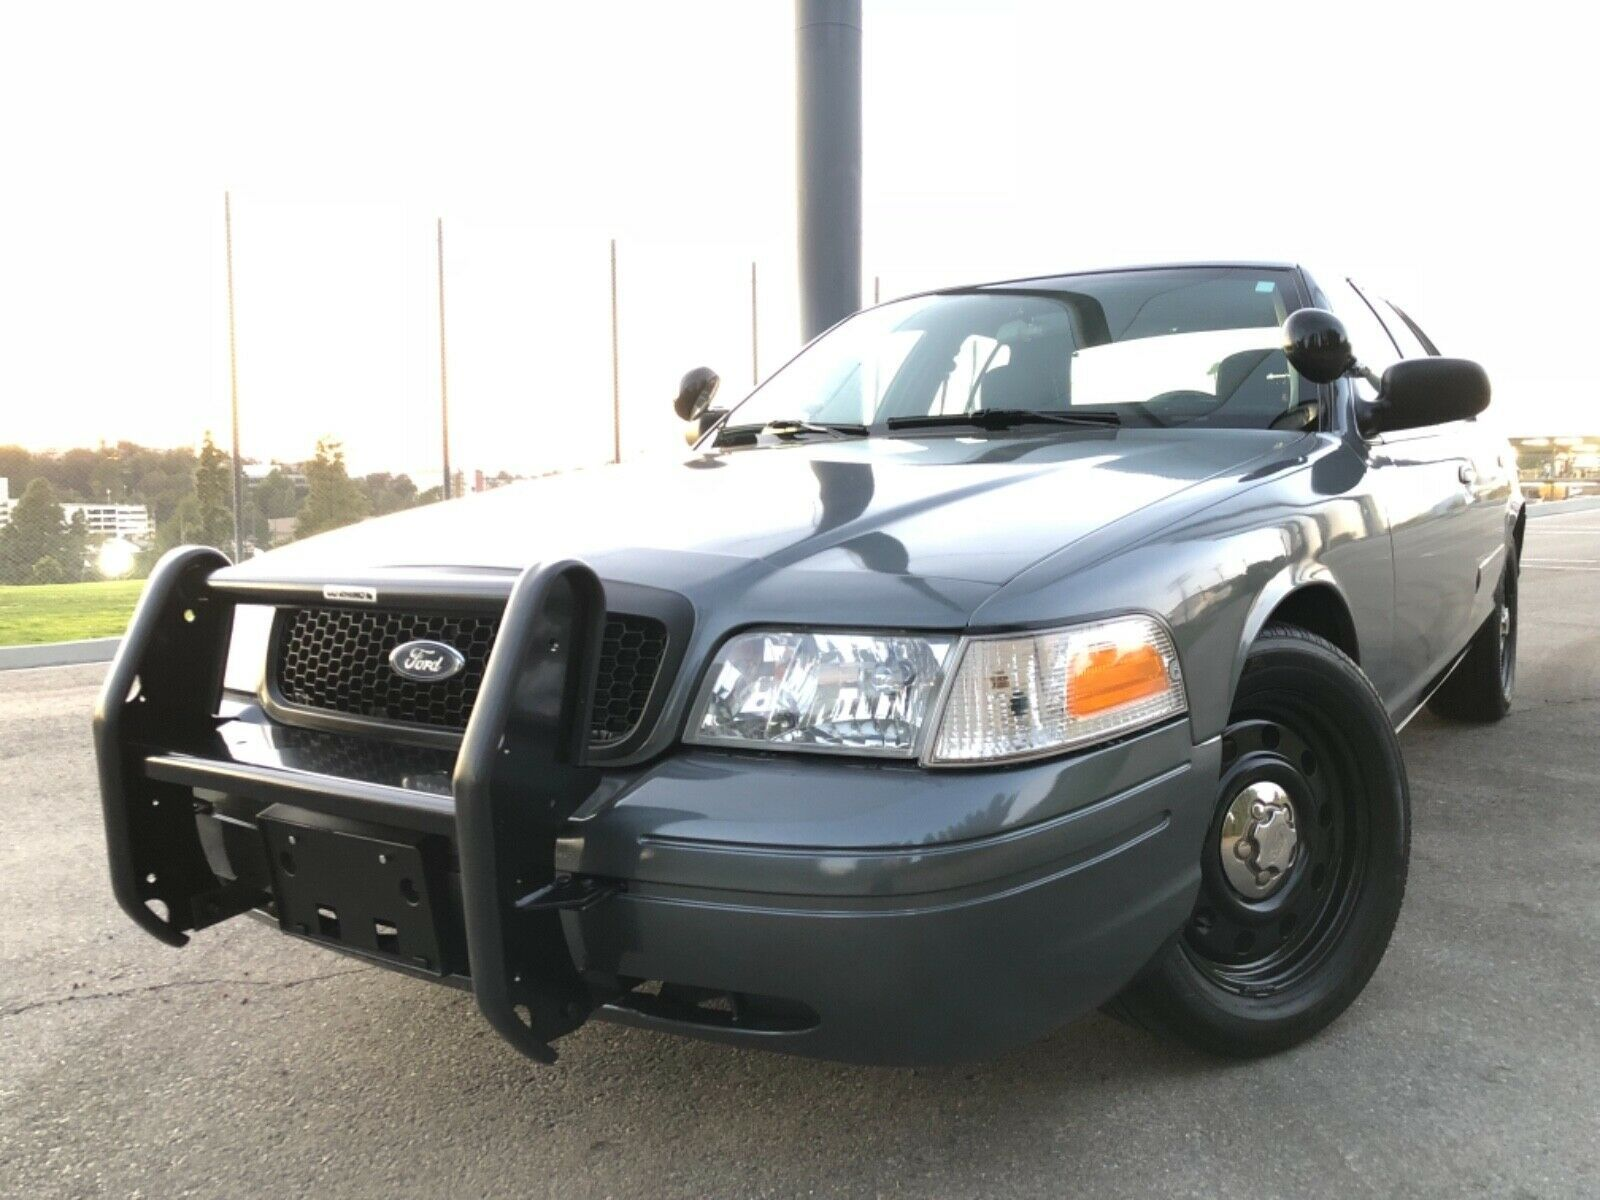 2008 Ford Crown Victoria Police Interceptor Ebay Victoria